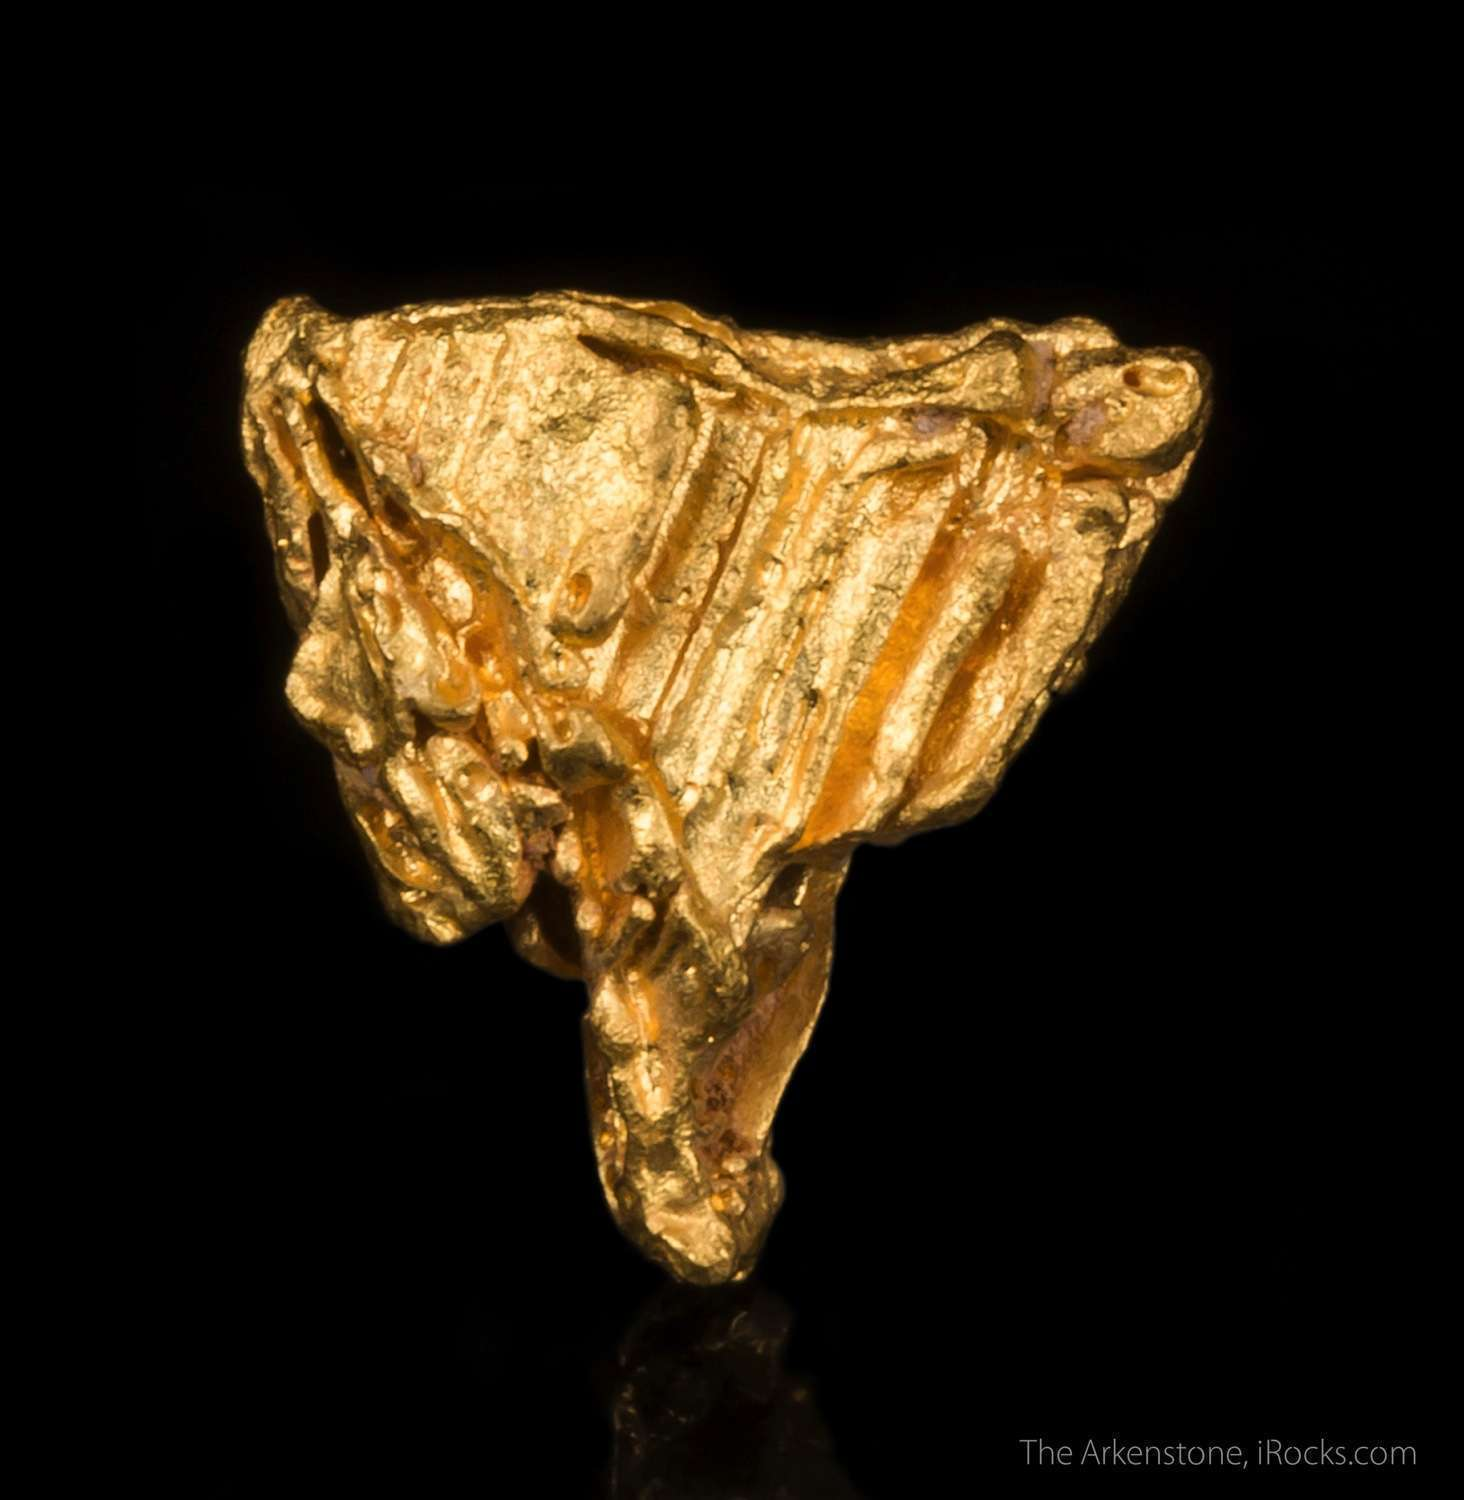 crude crystallized classic gold nugget irocks fine minerals